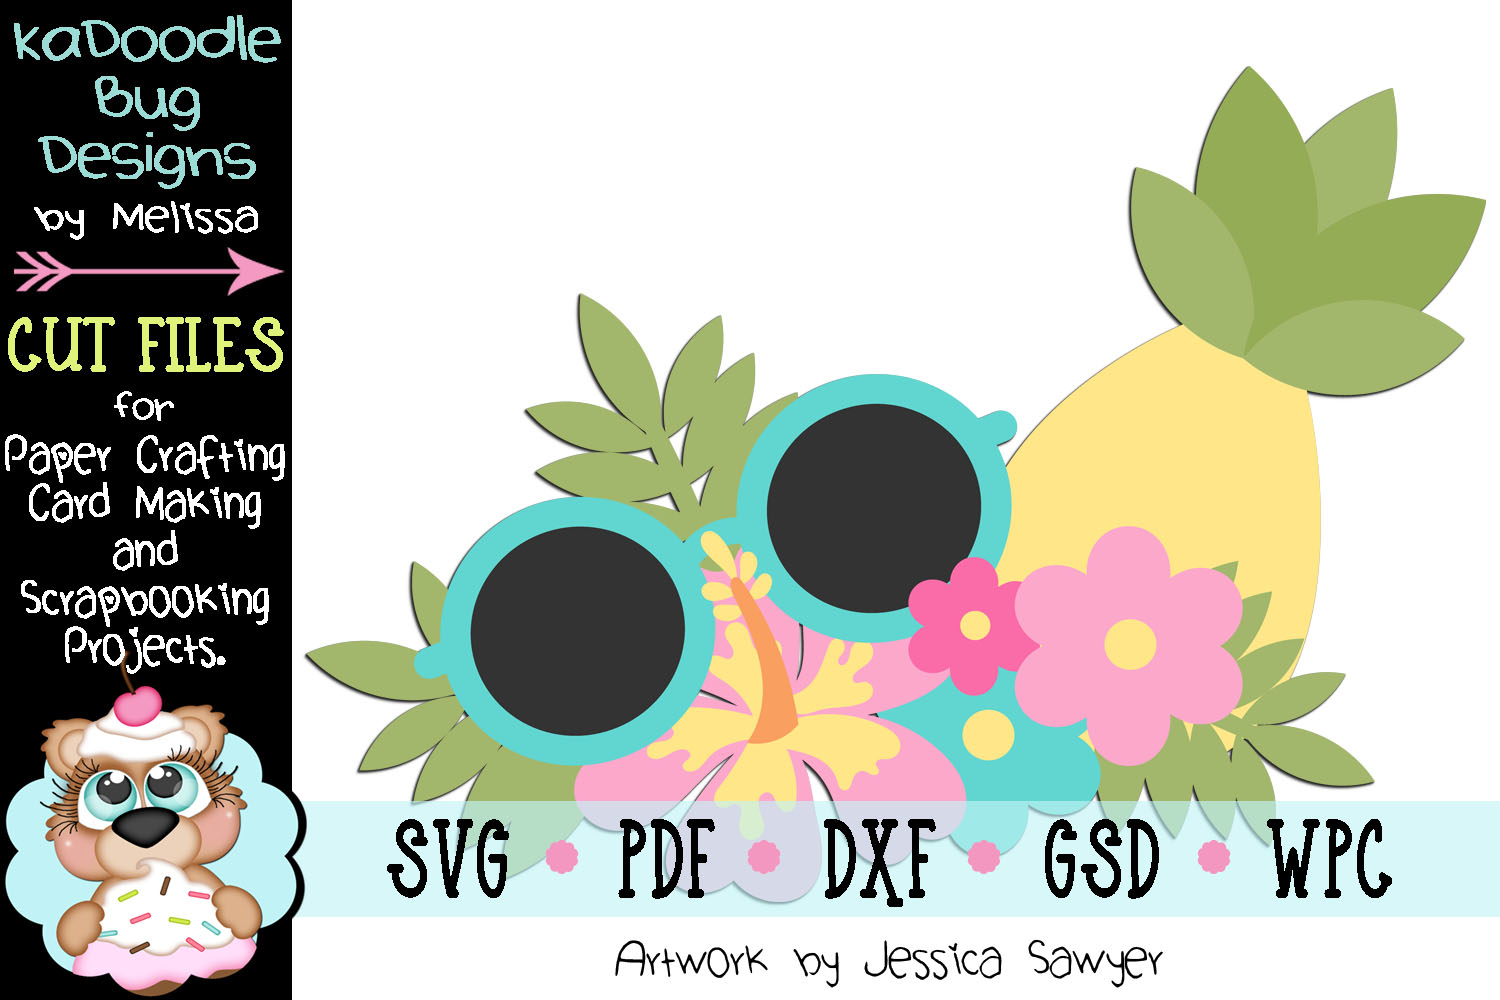 Summer Vibes Pineapple Cut File - SVG PDF DXF GSD WPC example image 1